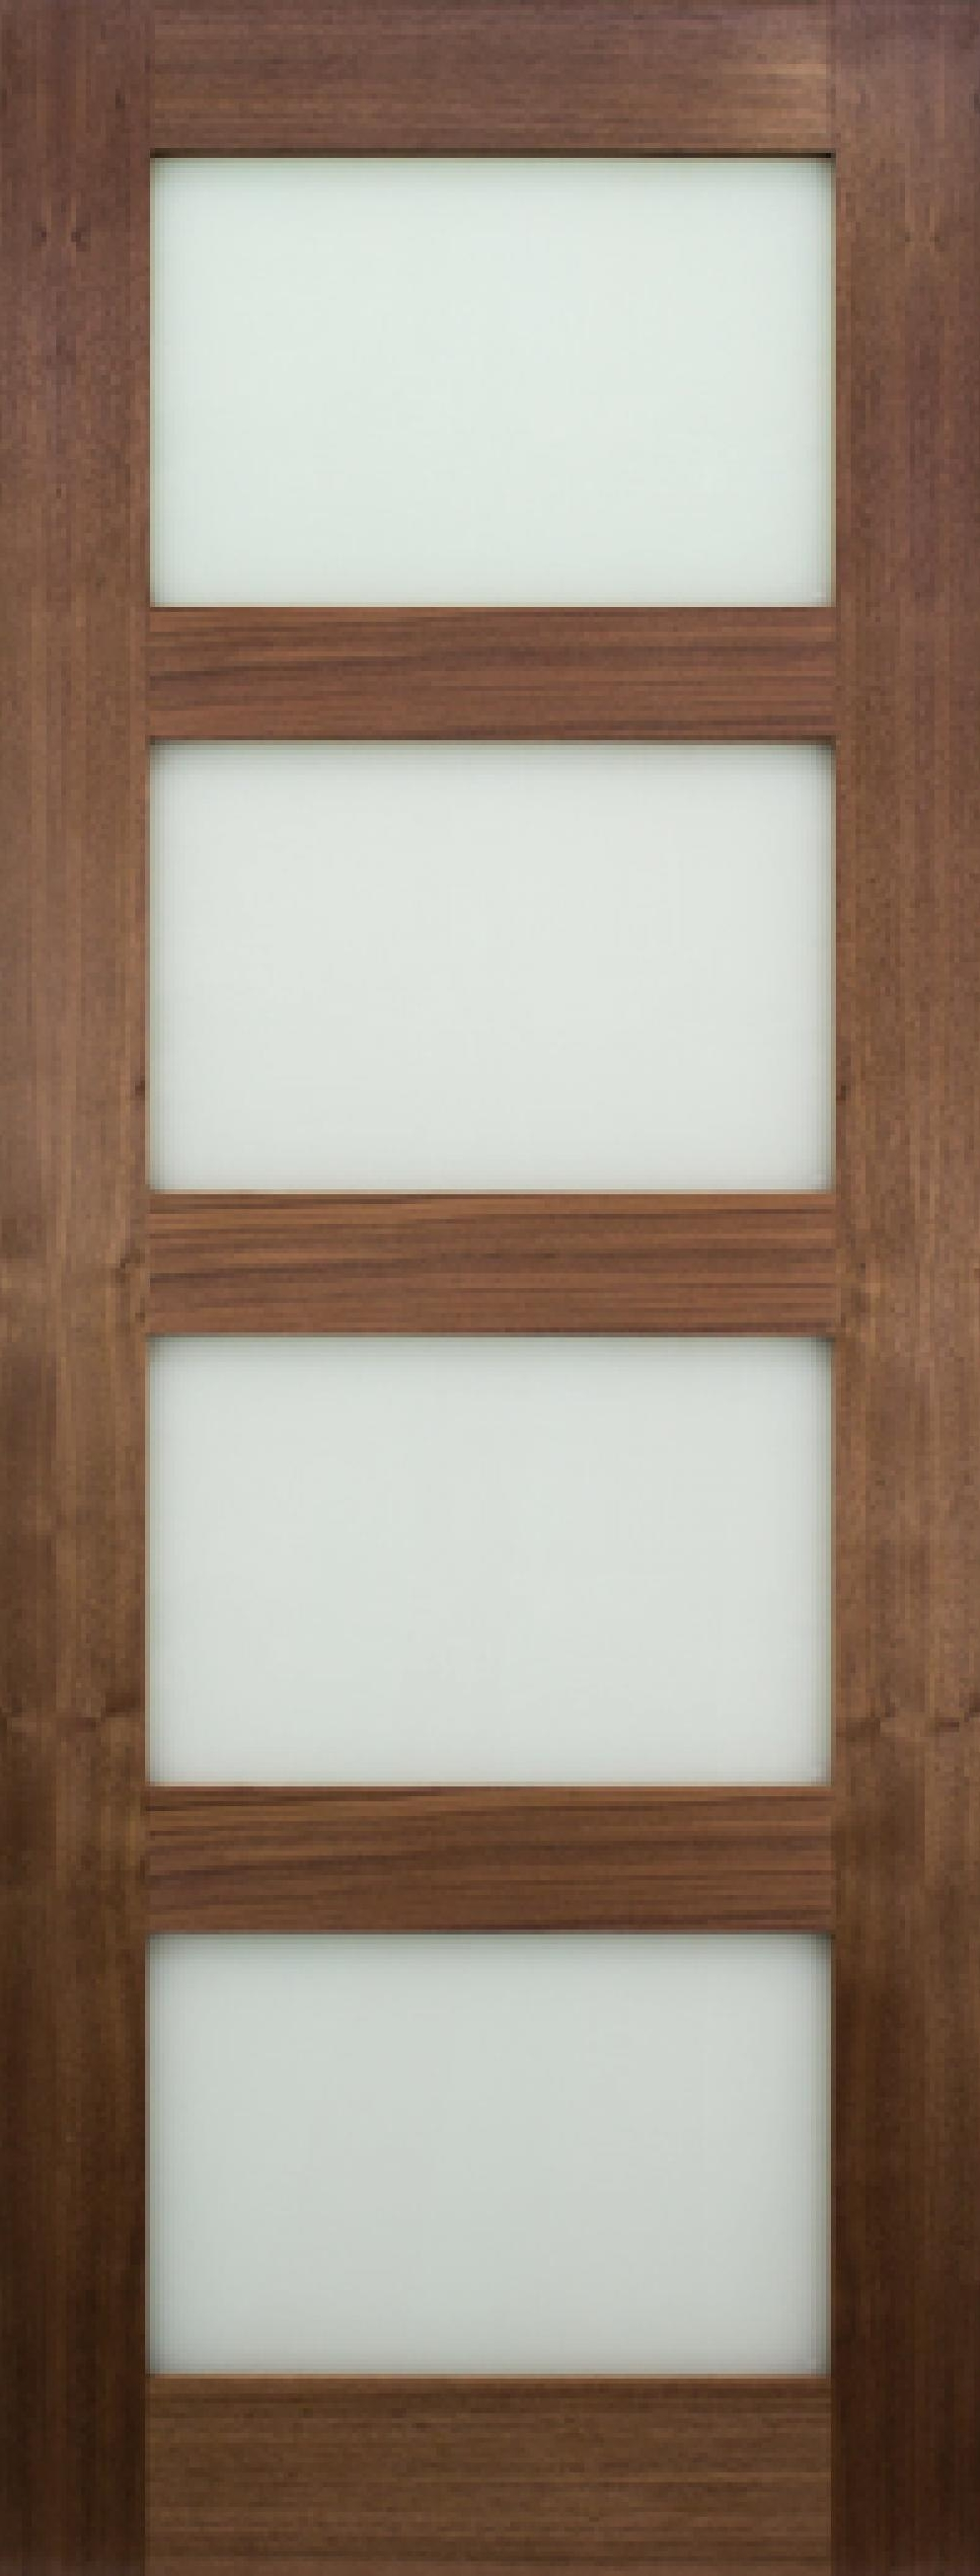 Coventry Walnut Glazed - FROSTED PREFINISHED:  Image